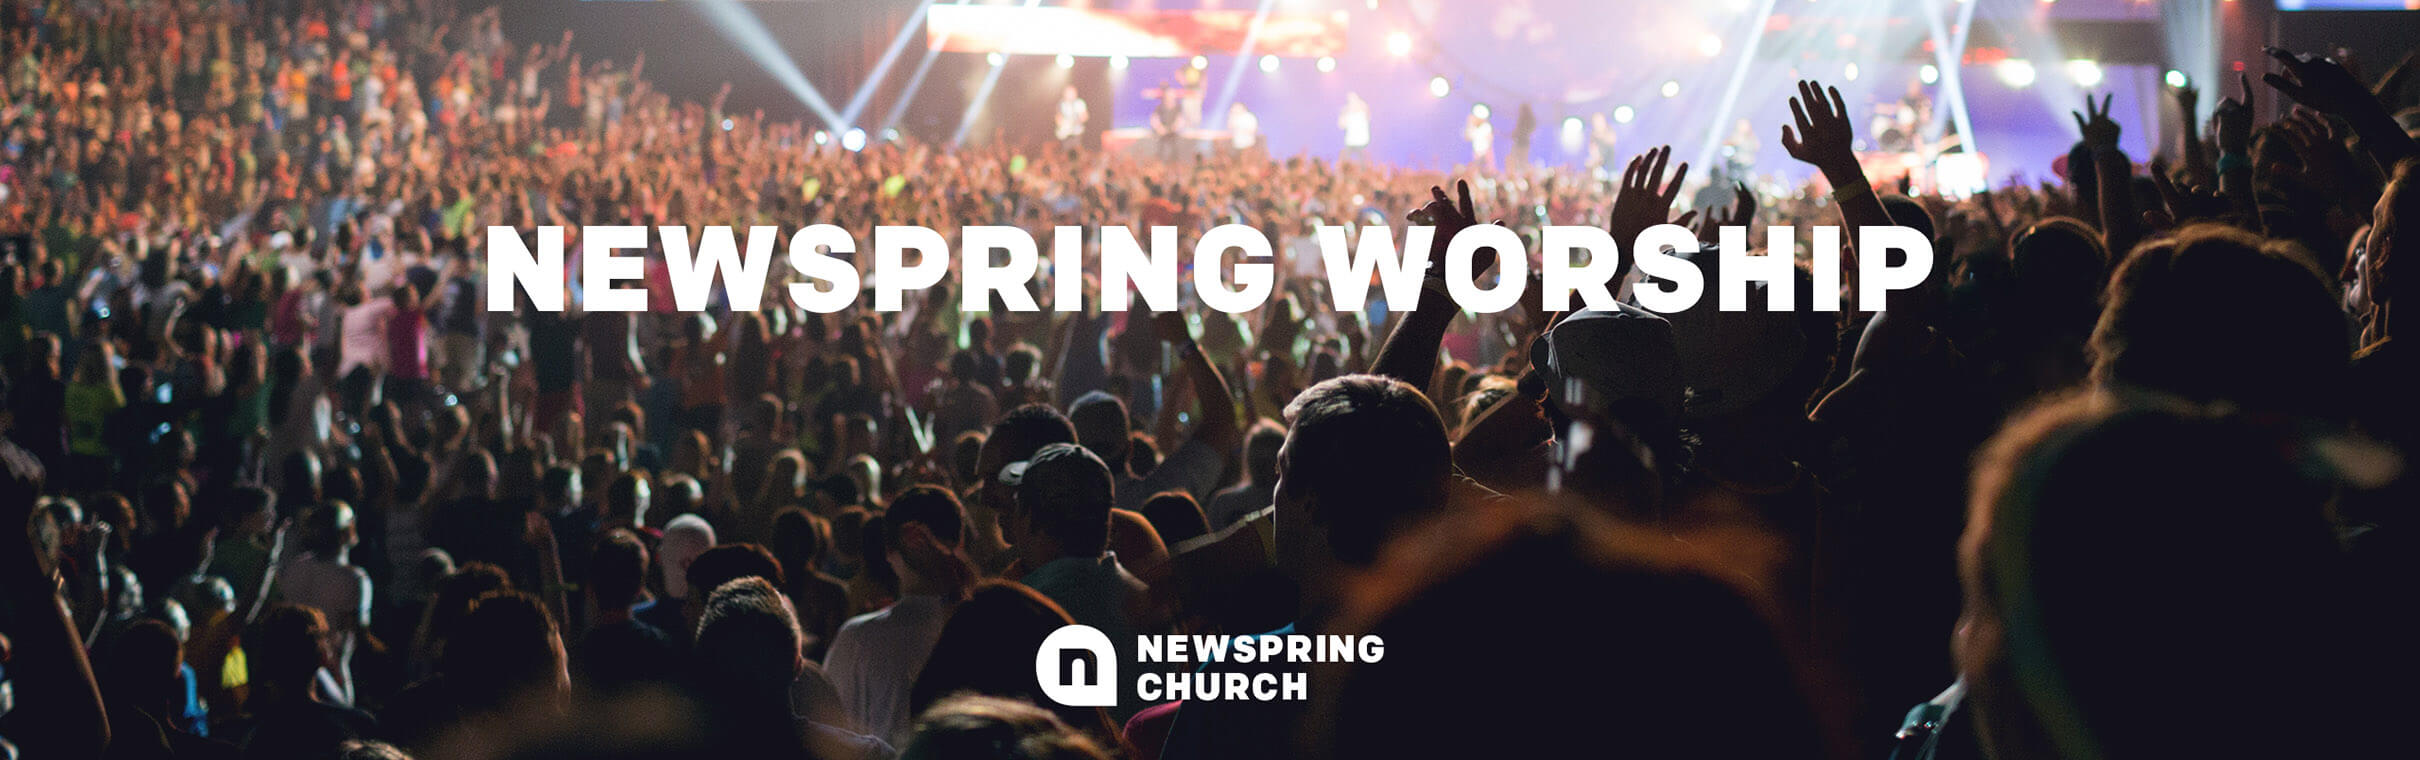 NewSpring Worship